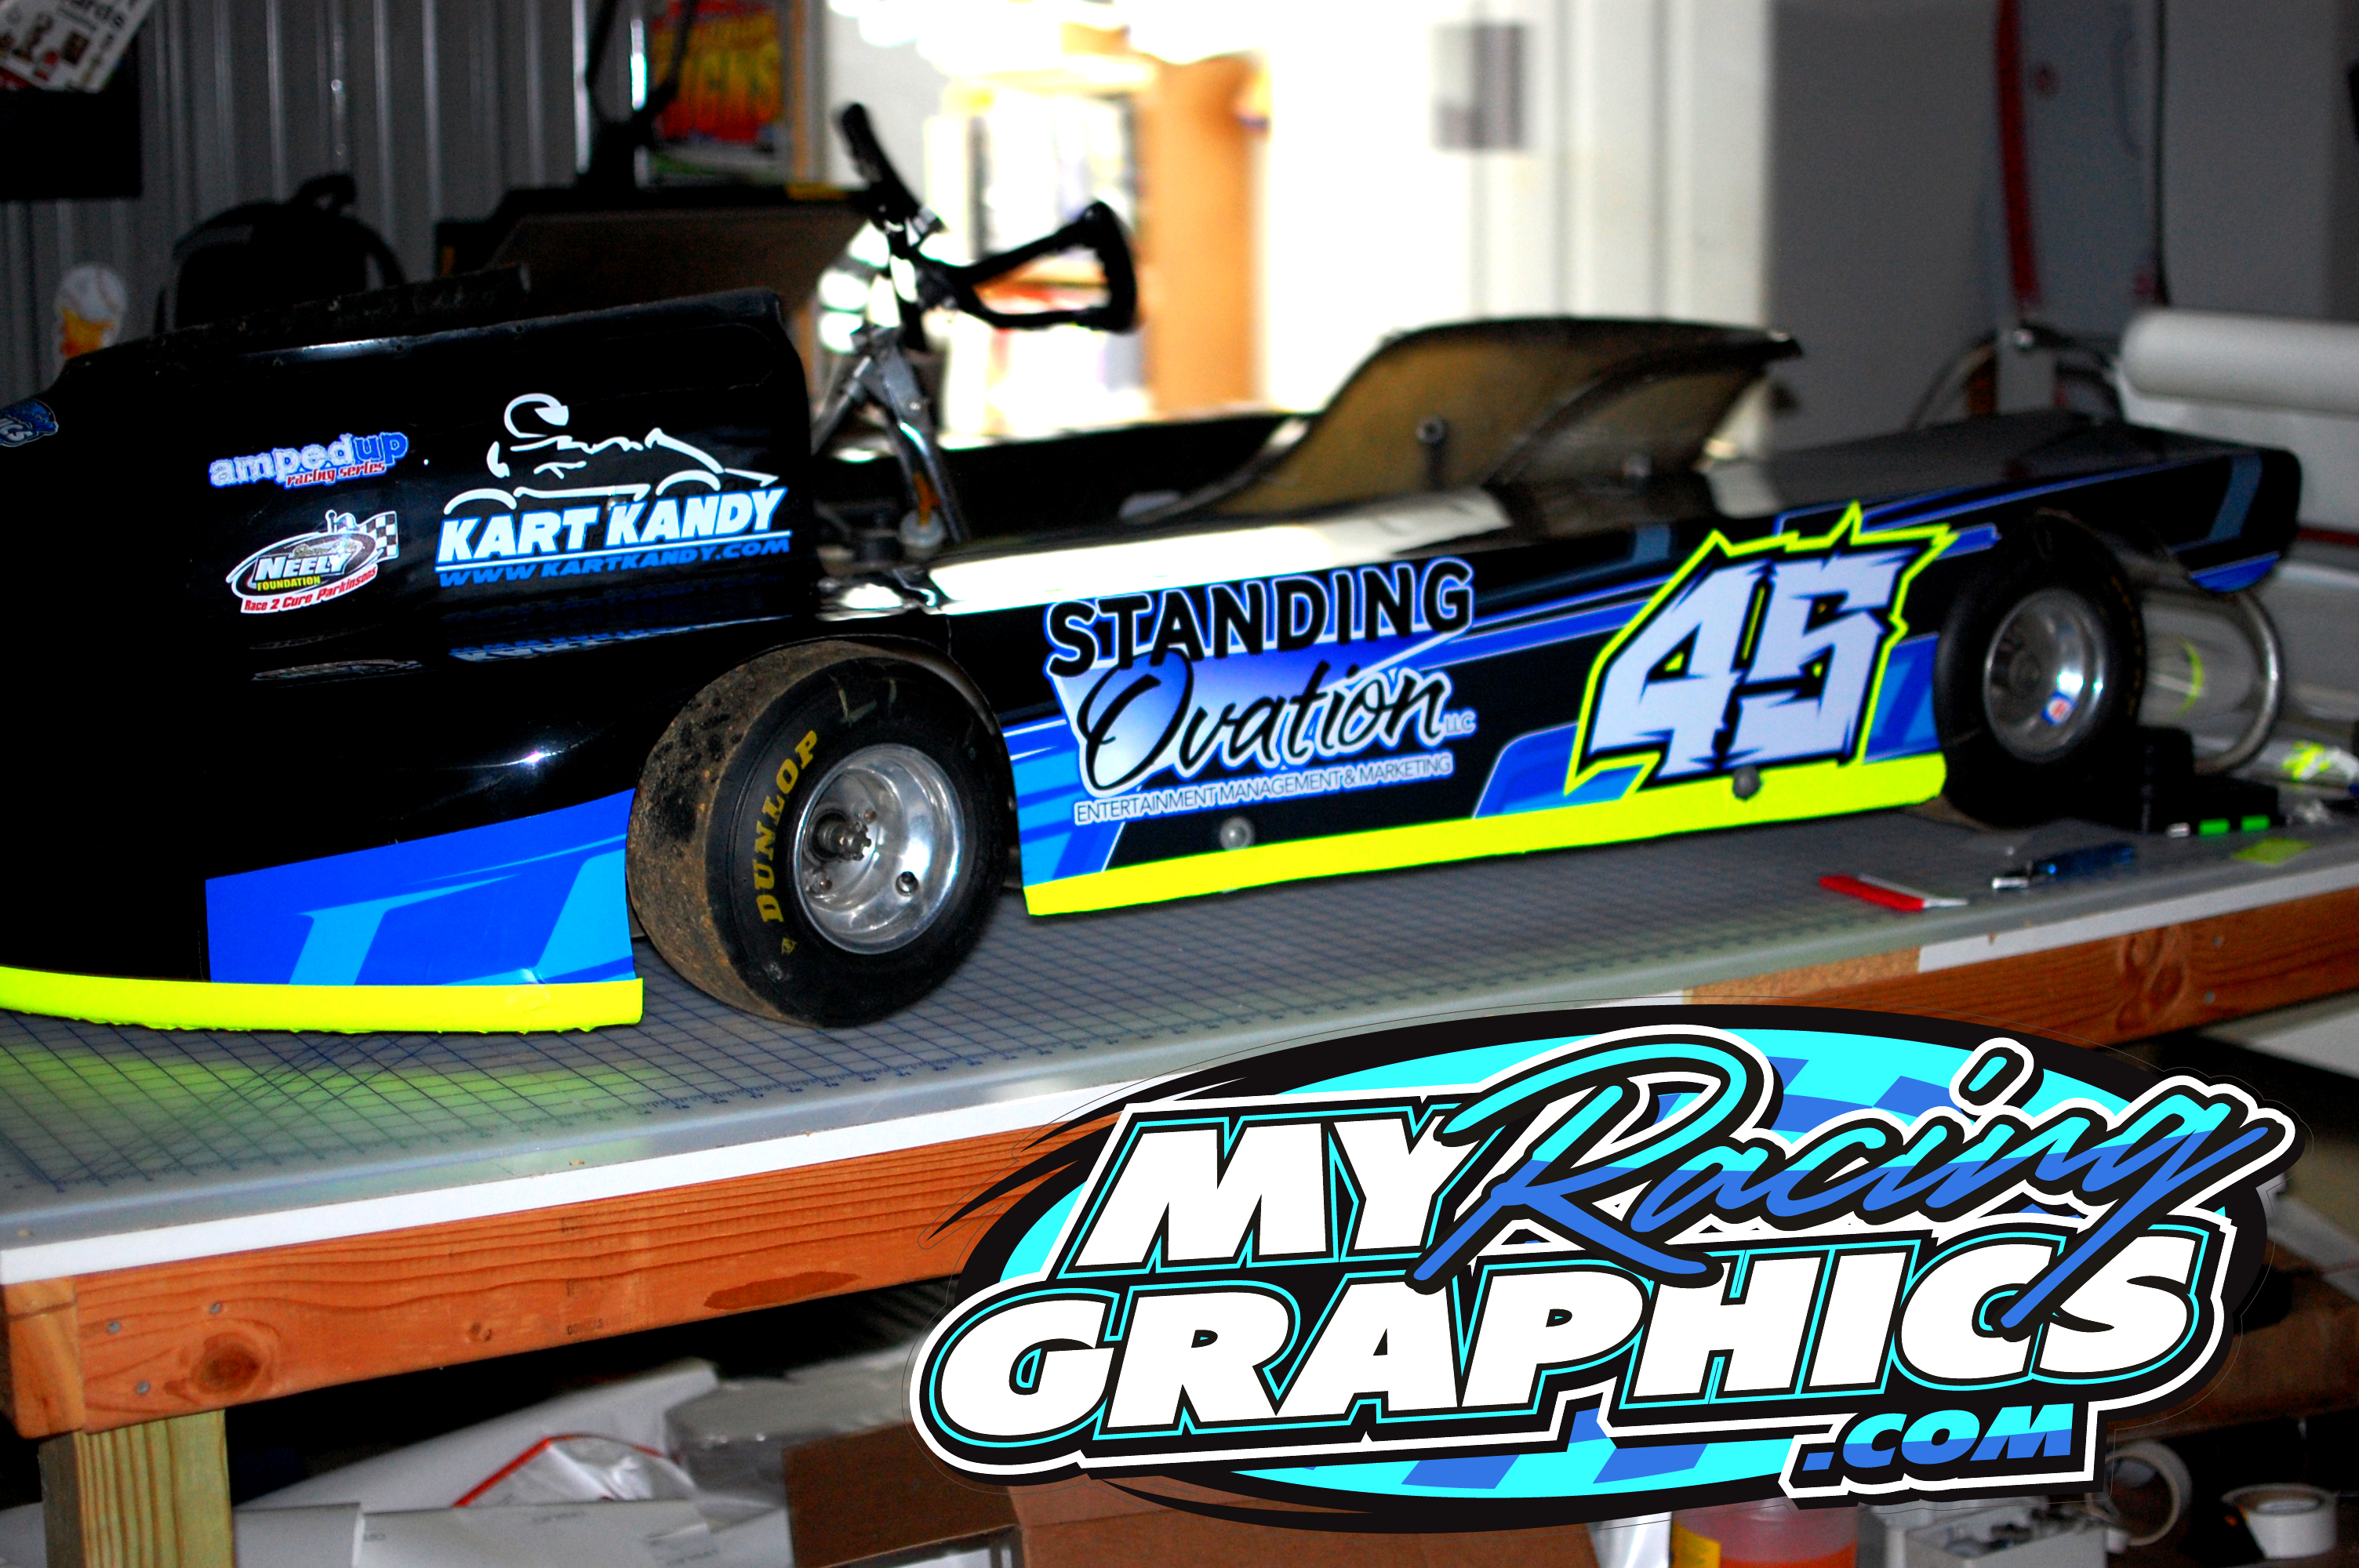 Mike Curran go kart graphics wrap